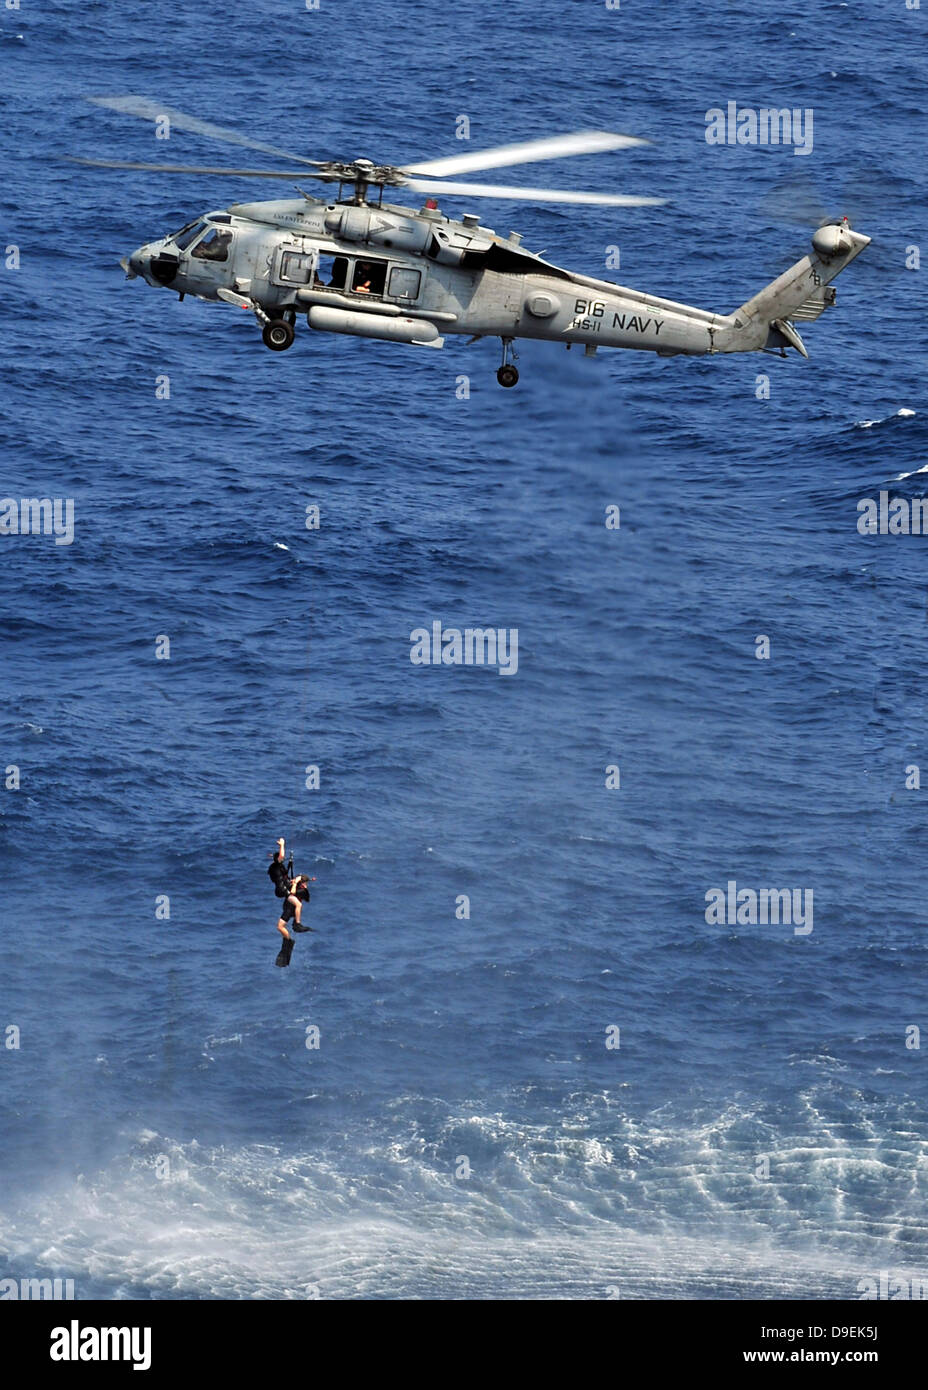 Search and rescue swimmers being hoisted into a helicopter. - Stock Image